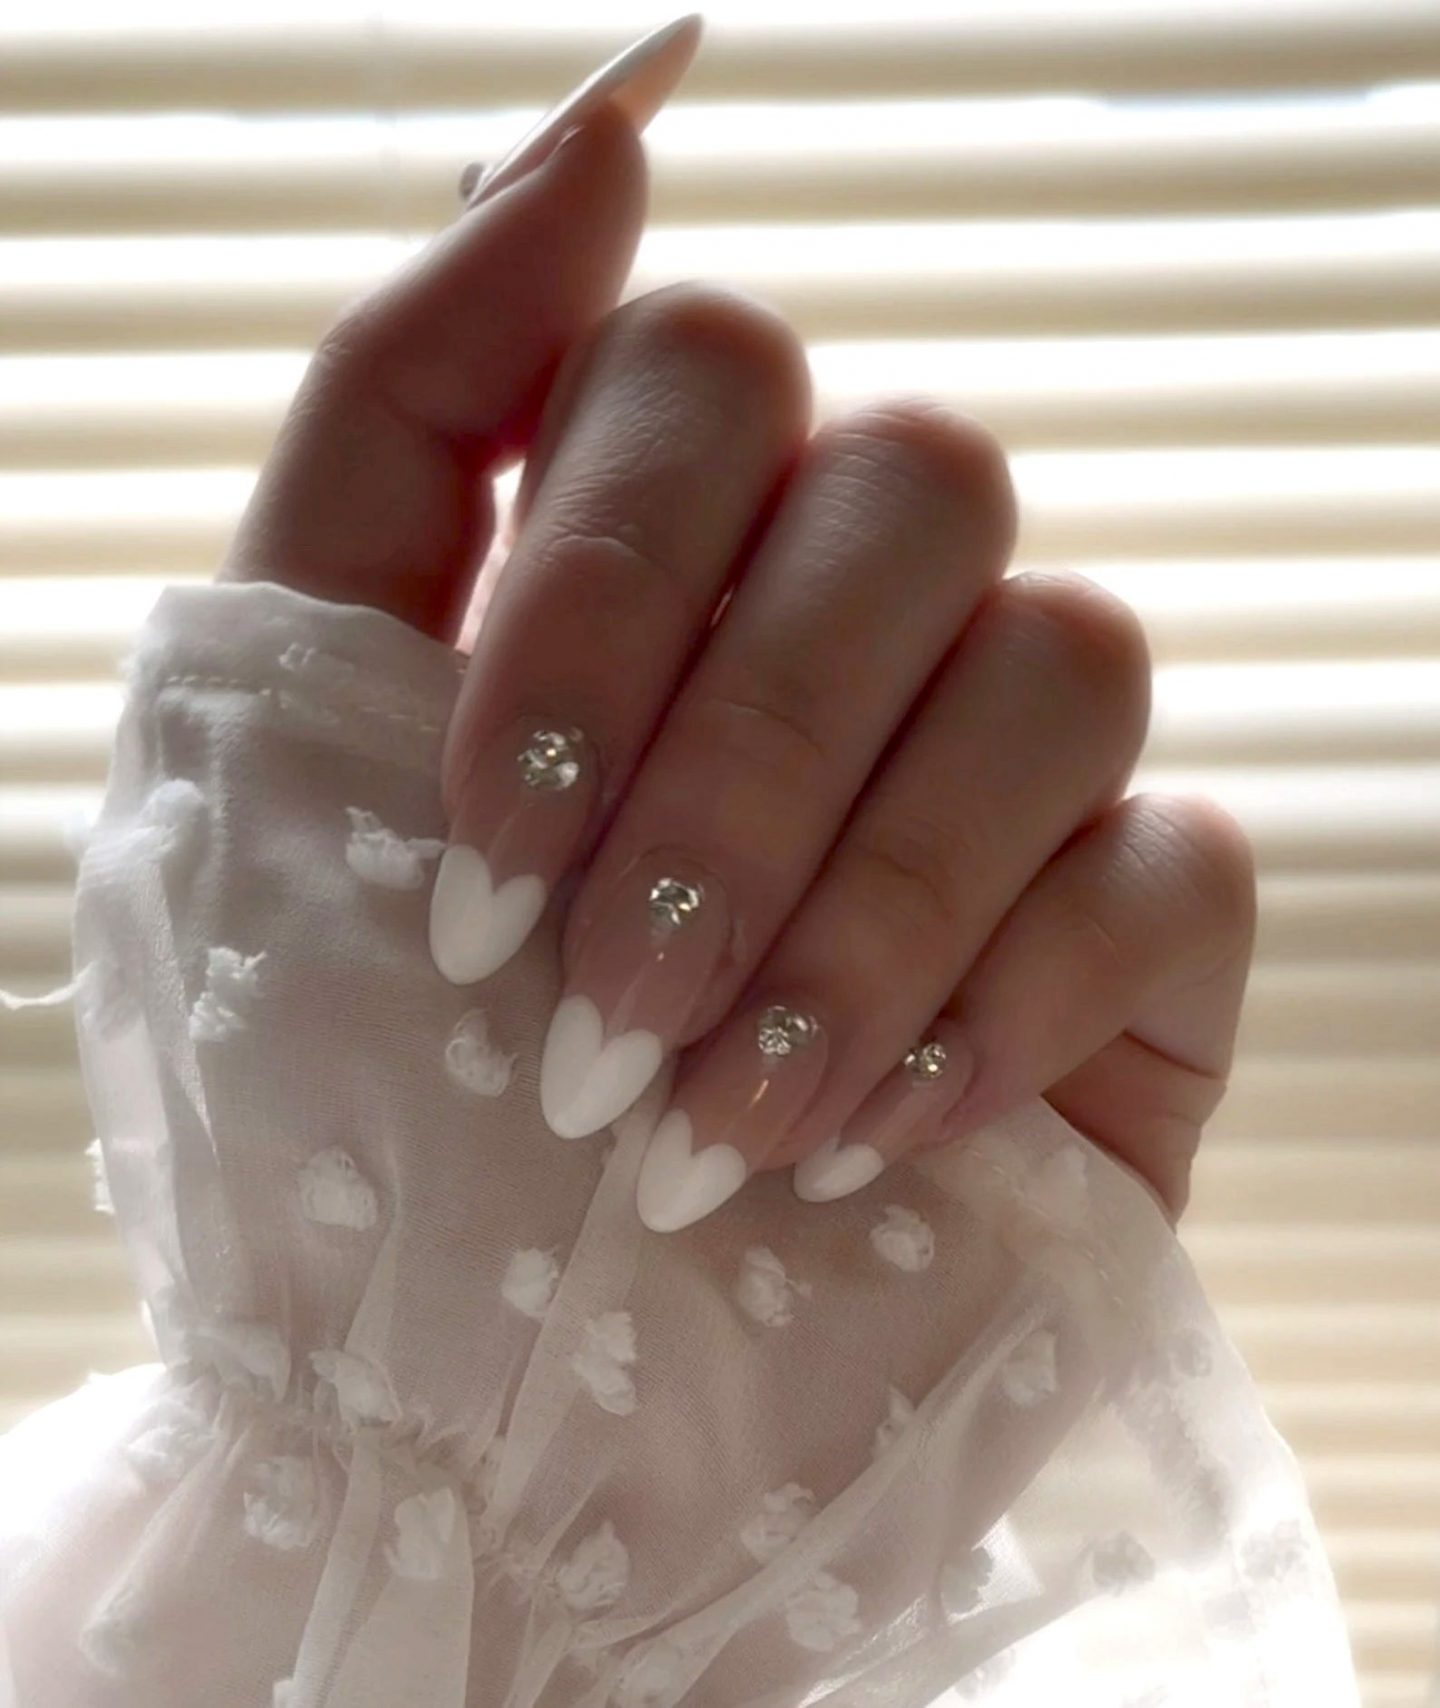 Cute French tip nails with white hearts and crystals